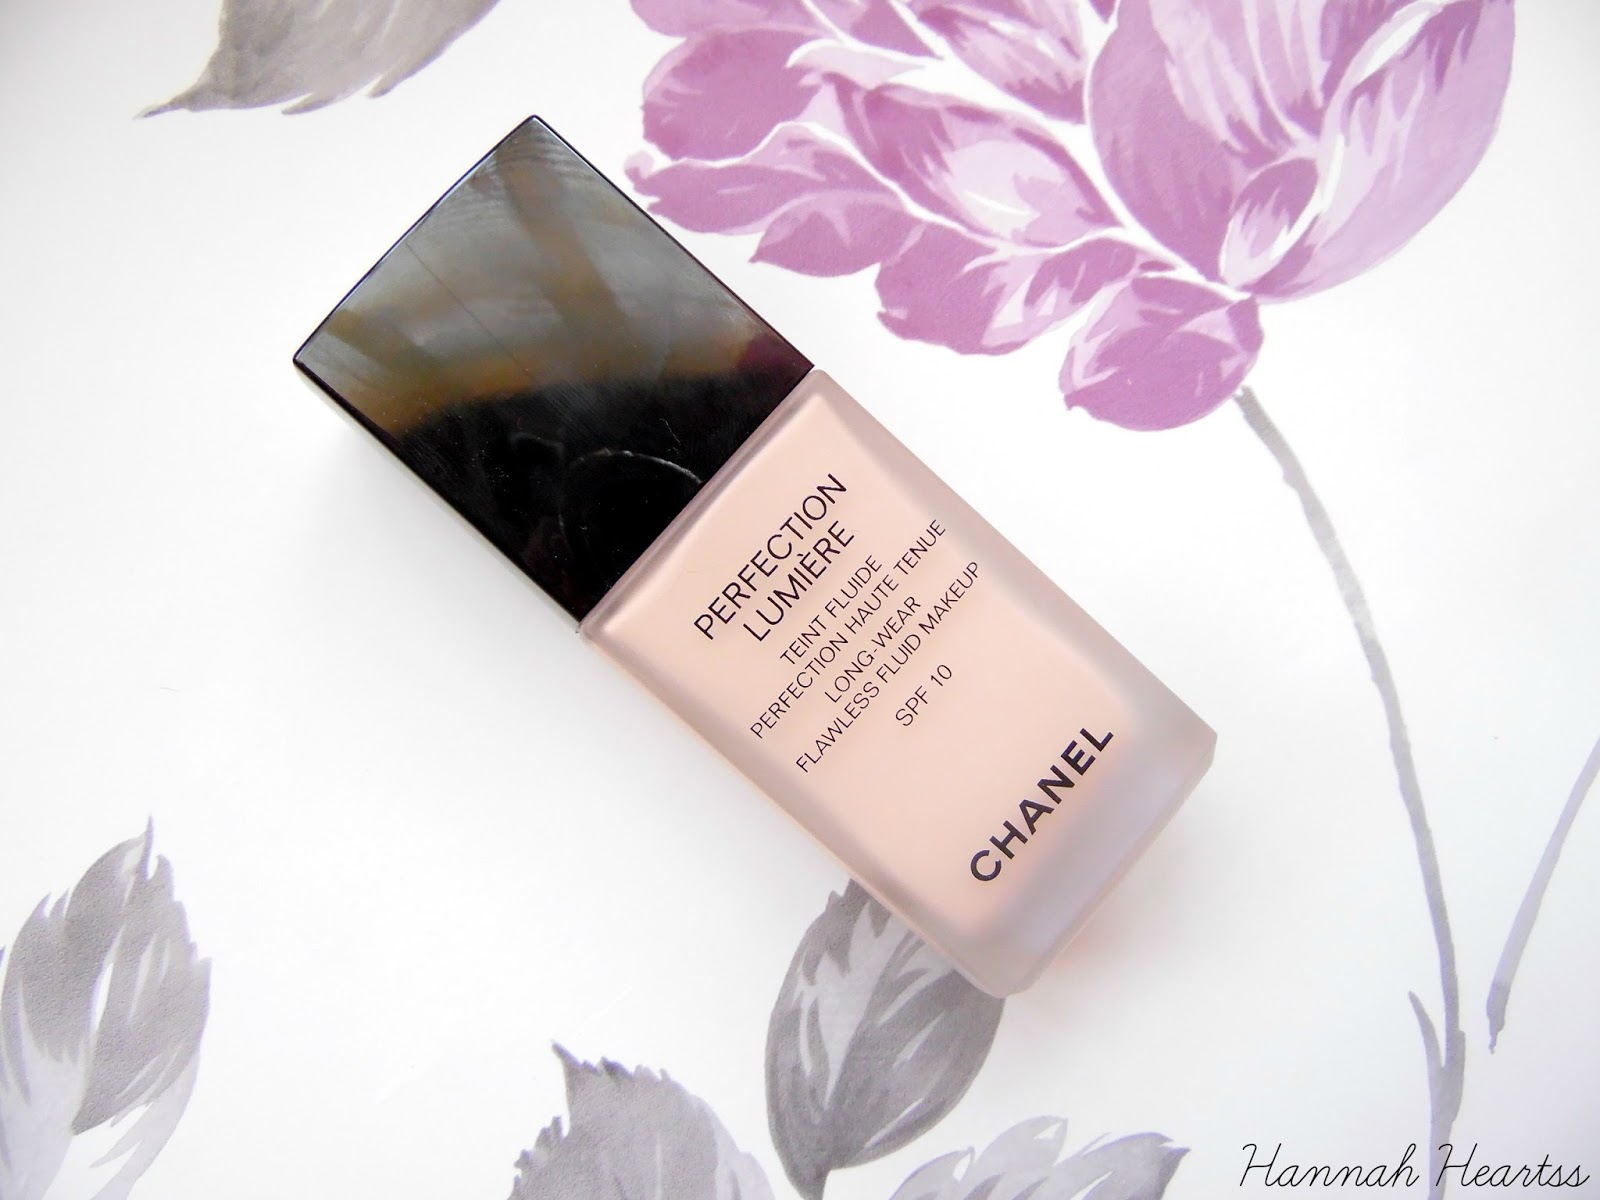 Chanel Perfection Lumière Long-Wear Flawless Fluid